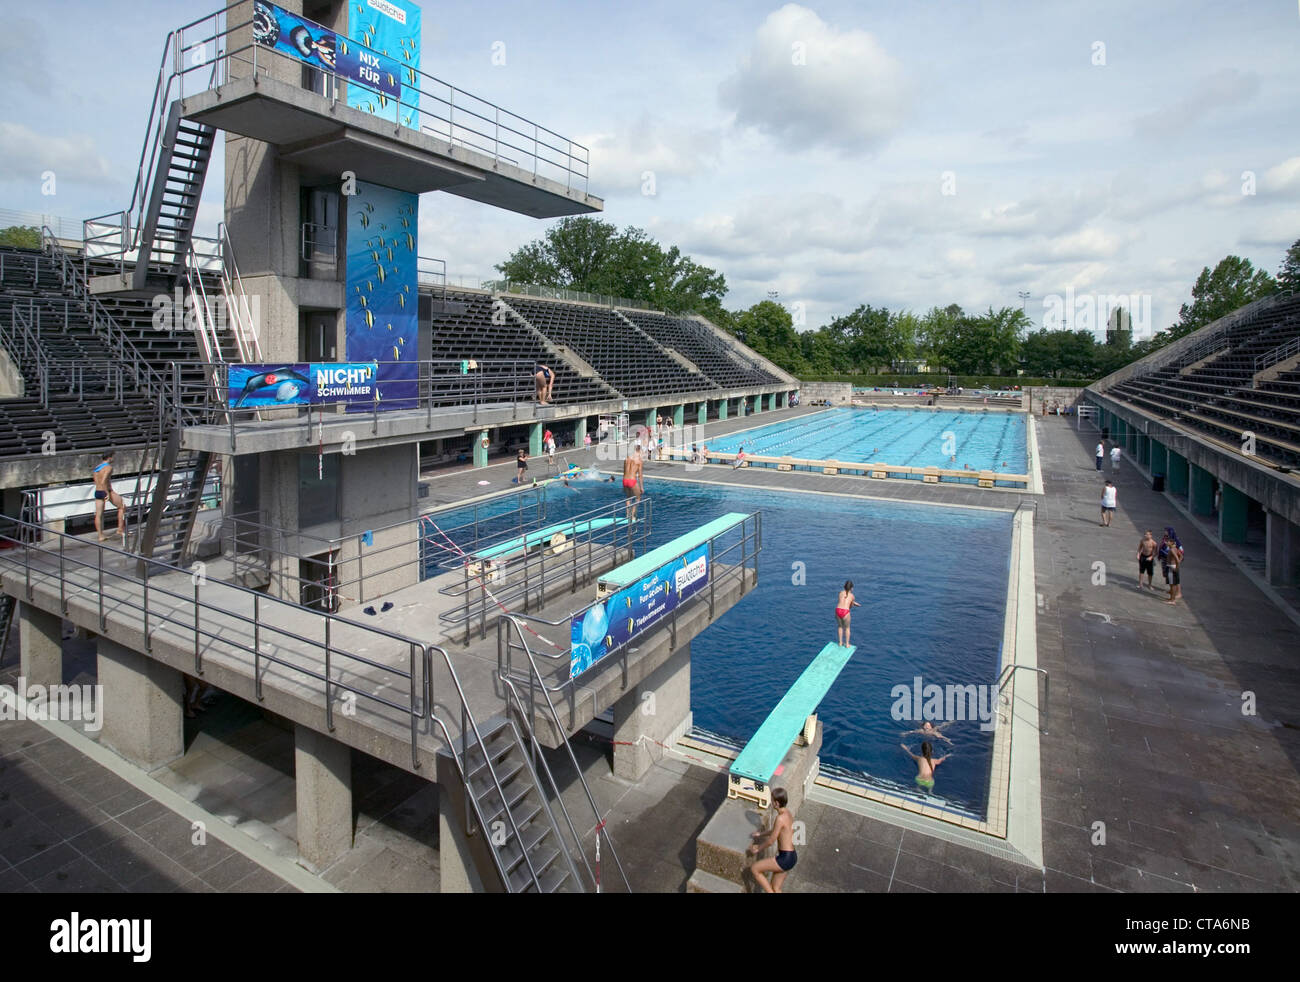 Pools In Berlin I'll Just Double Flip Into The Water When I'm Not A